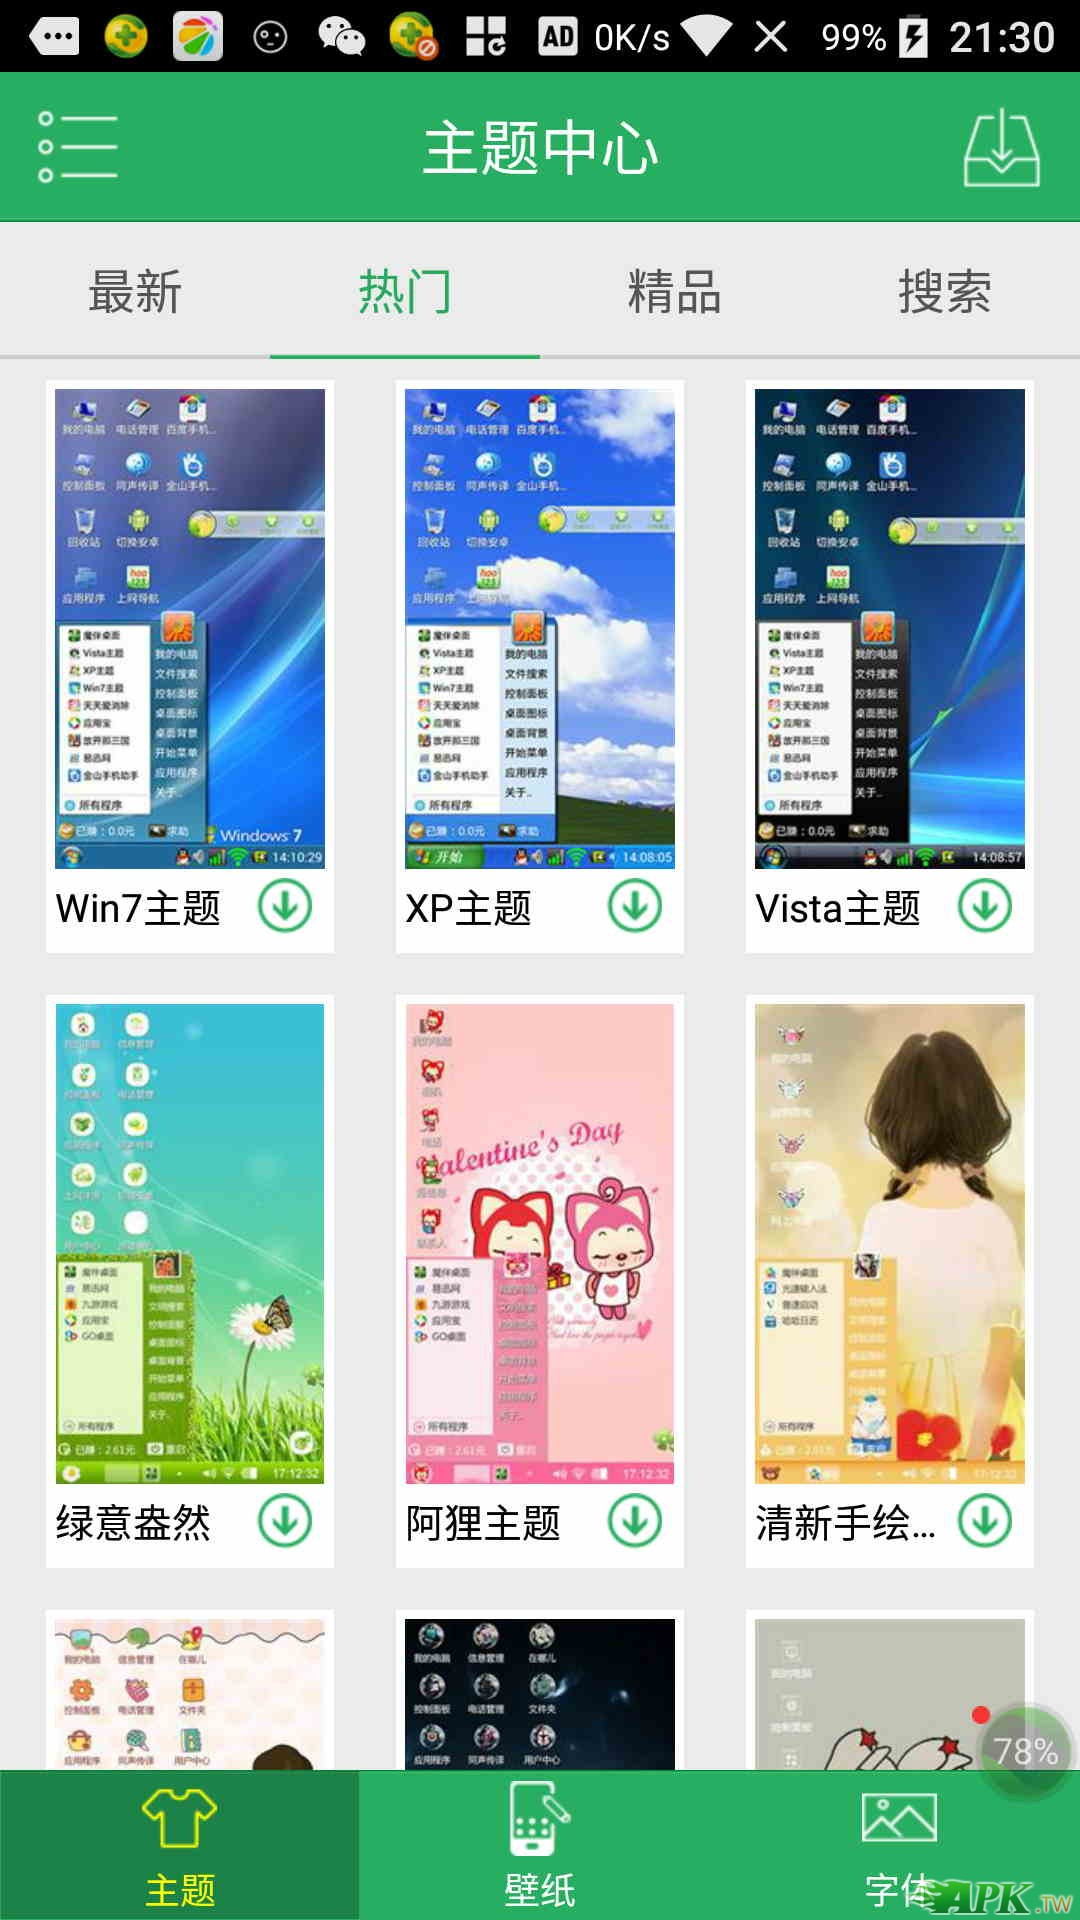 装酷神器Android vistaV20180215贺岁版